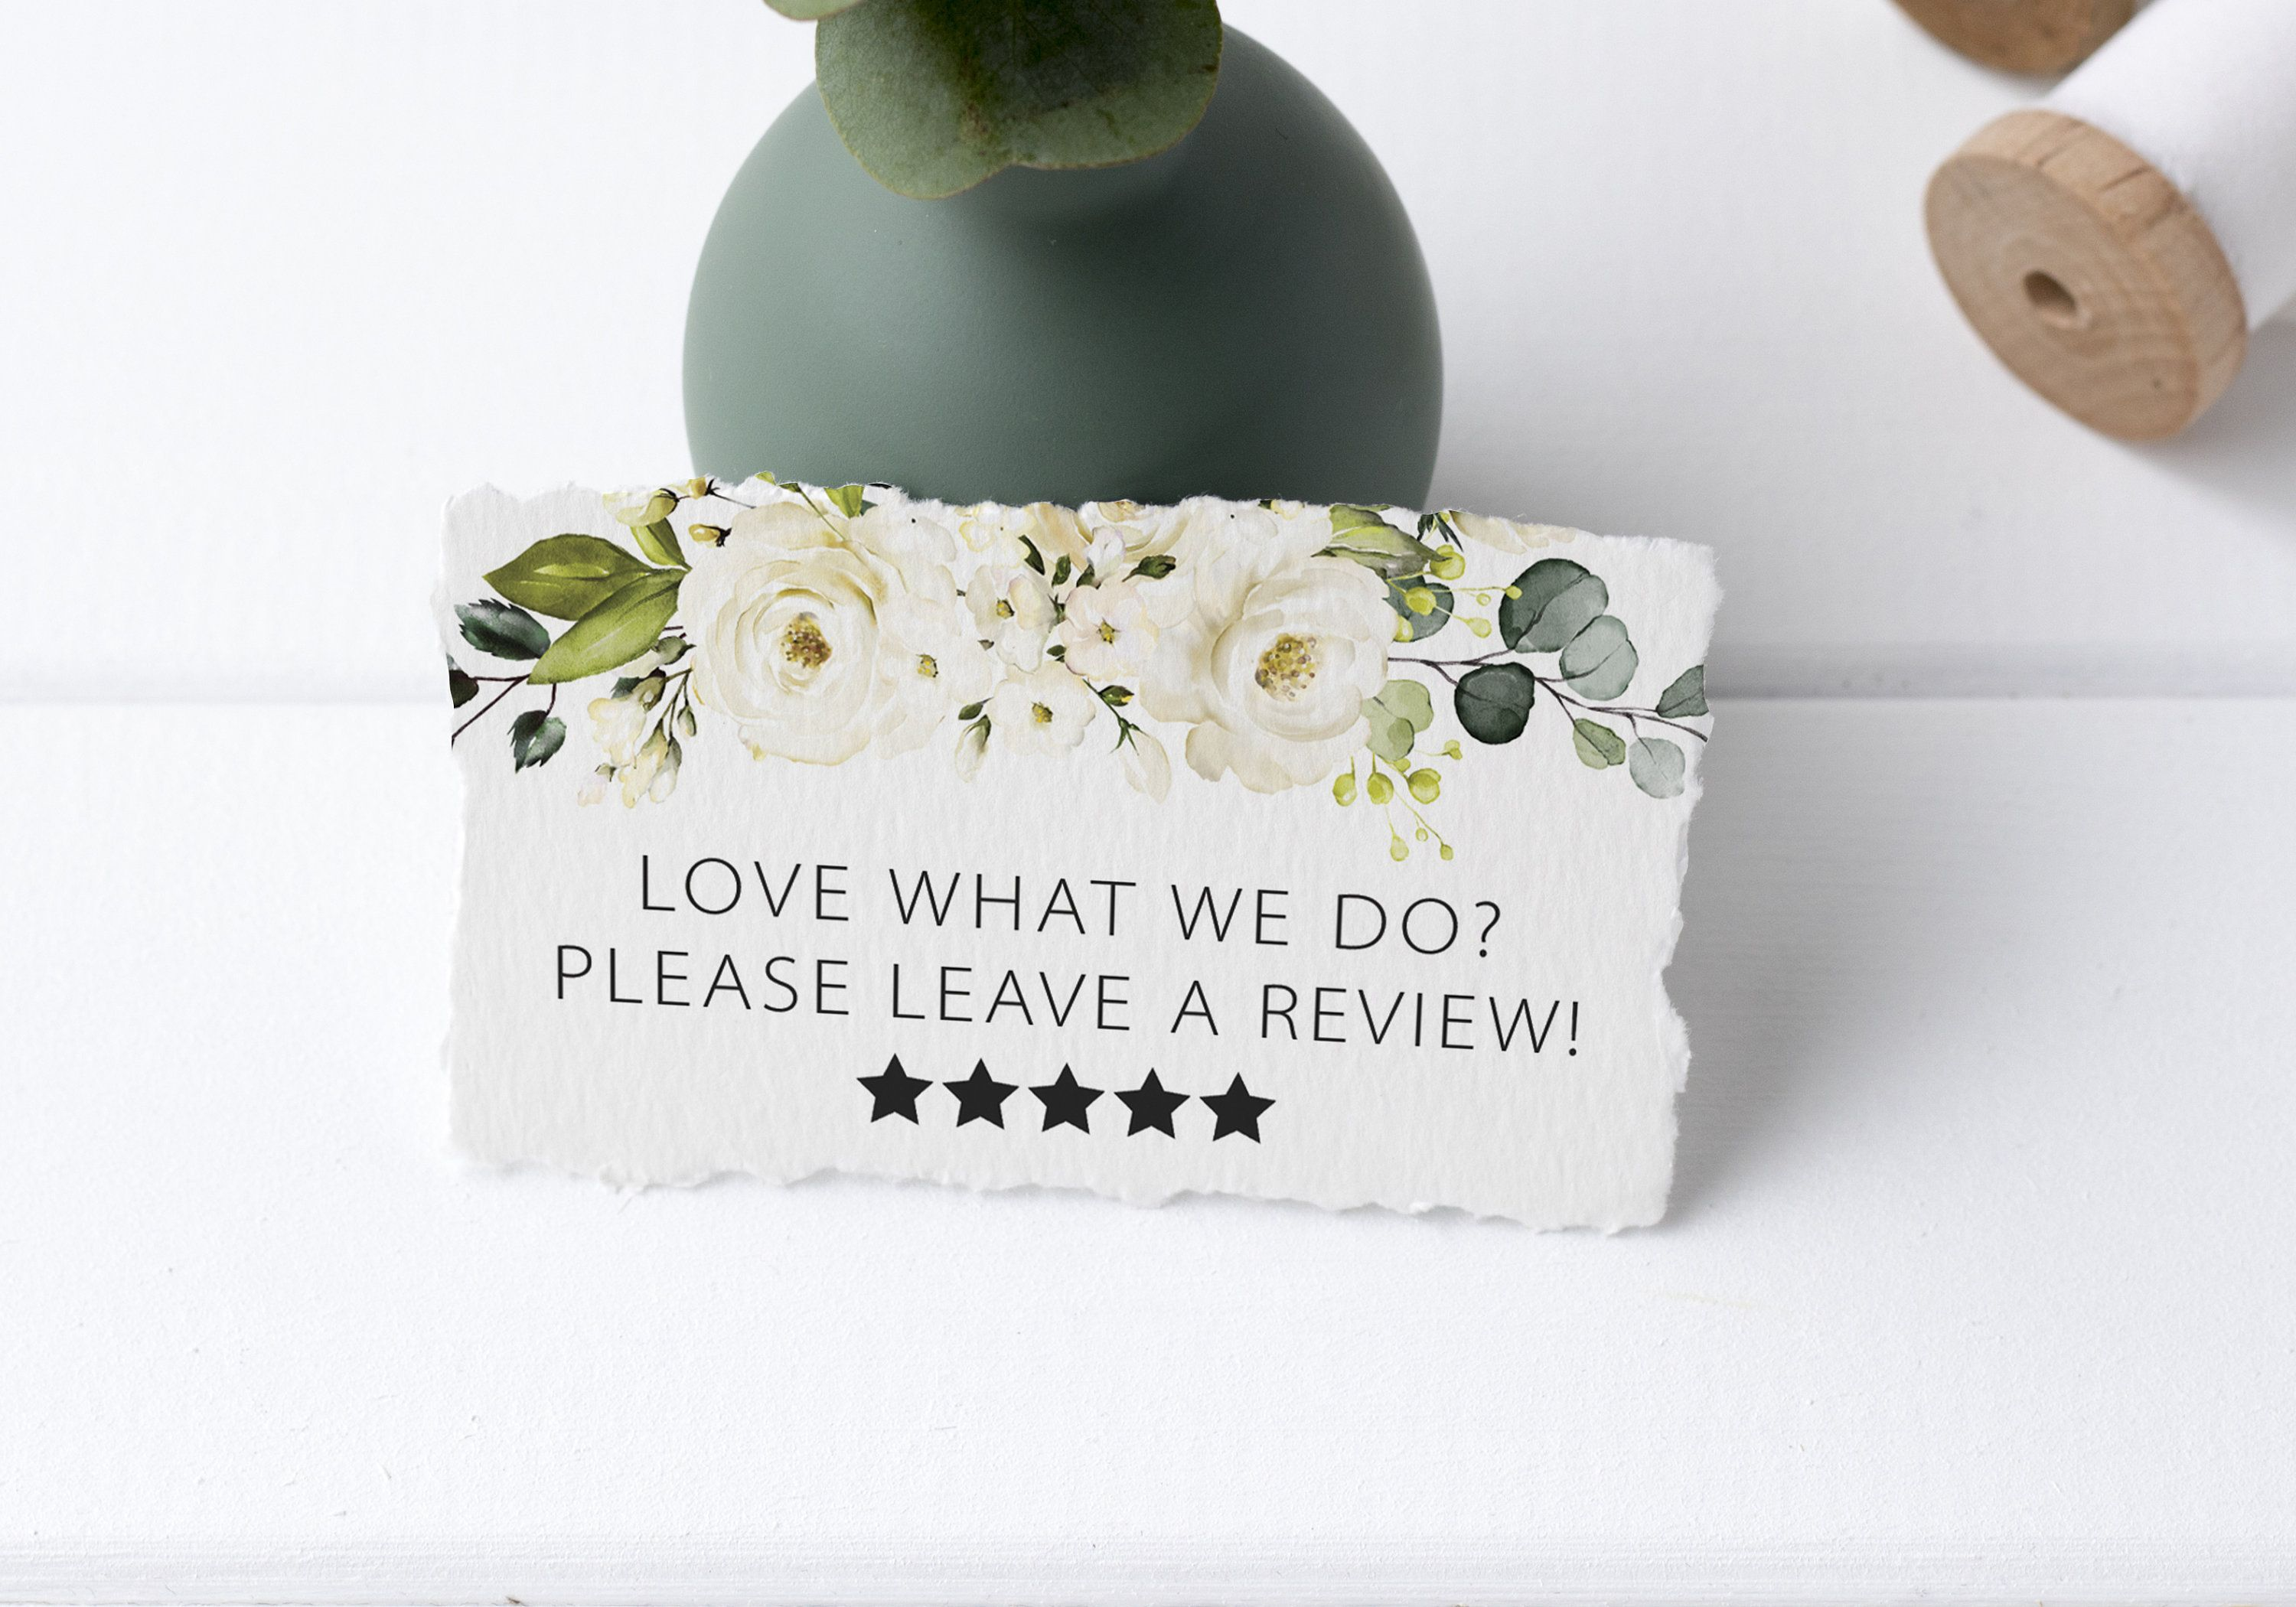 Review Request Cards Etsy Review Tags Leave A Review Etsy Etsy Reviews Jewelry Display Cards Card Tags